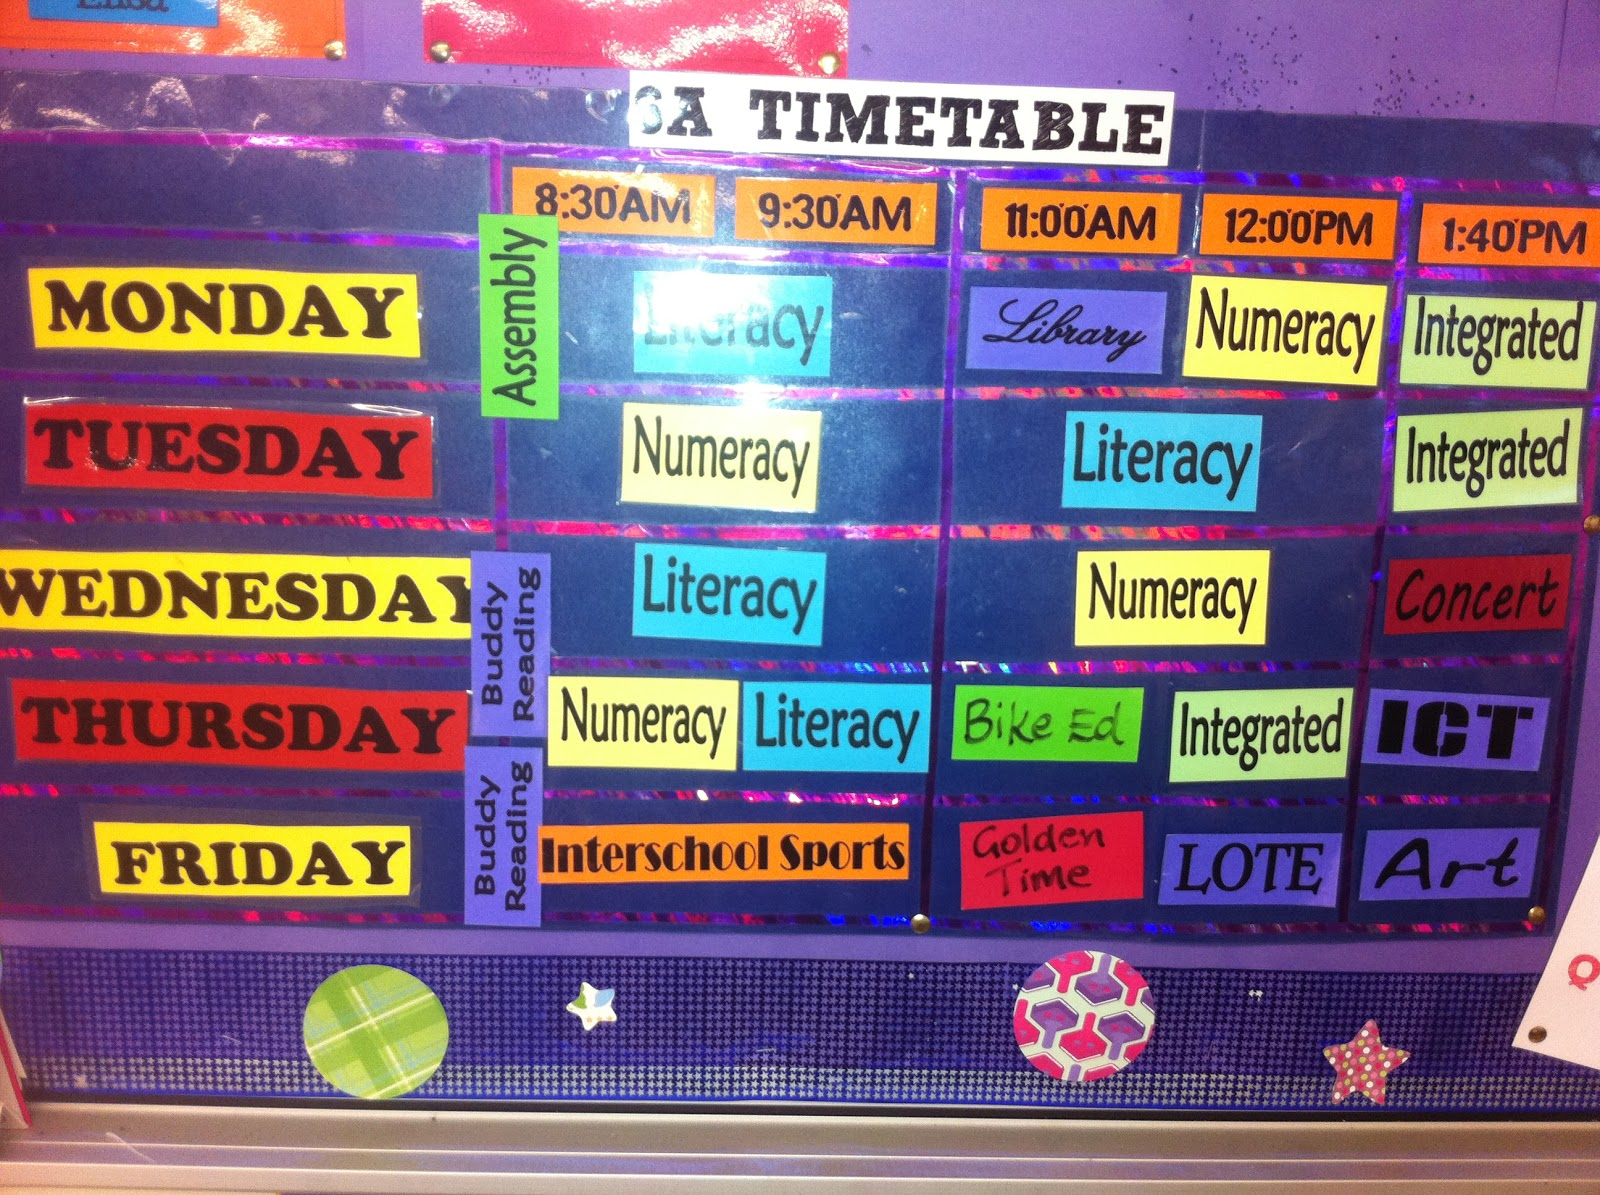 ms as crazy colourful classroom img 1345 colourfulclassroomblogspotcom online timetable maker for school online timetable maker for school